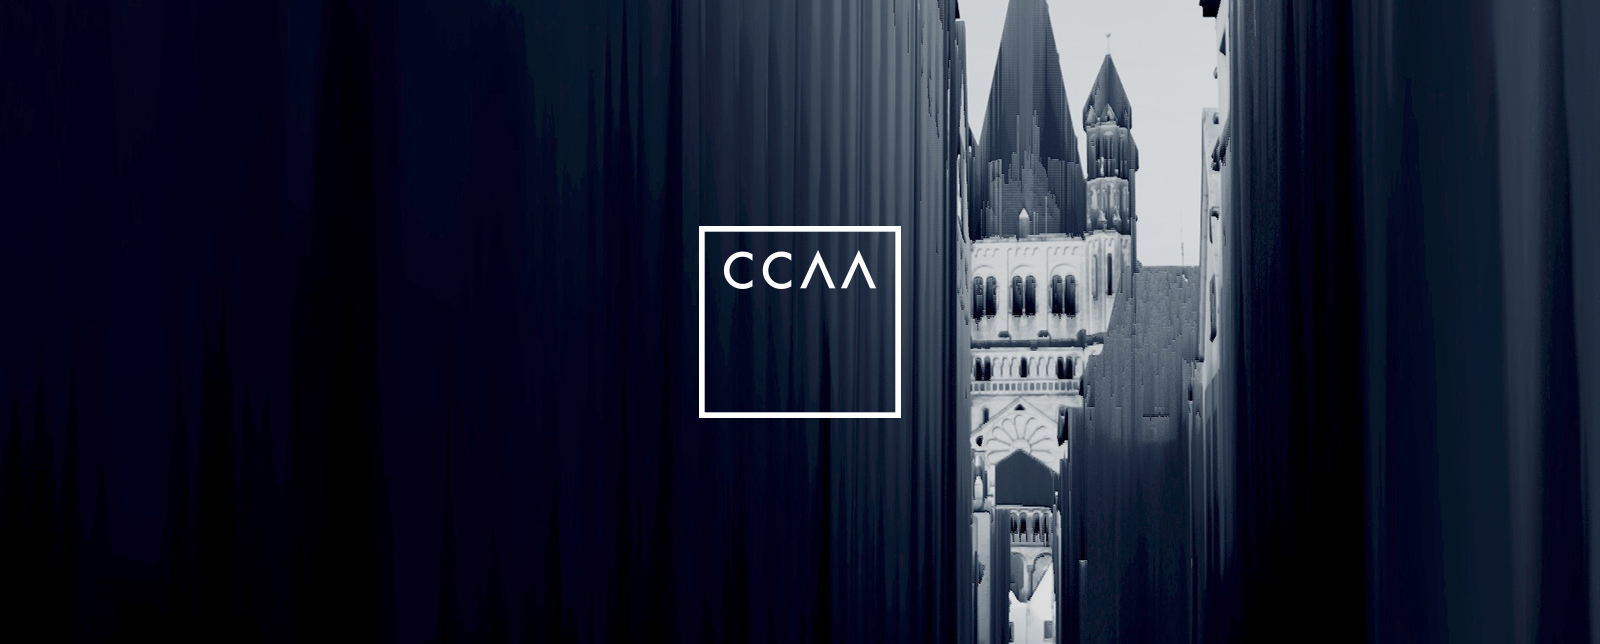 CCAA (Full Length)